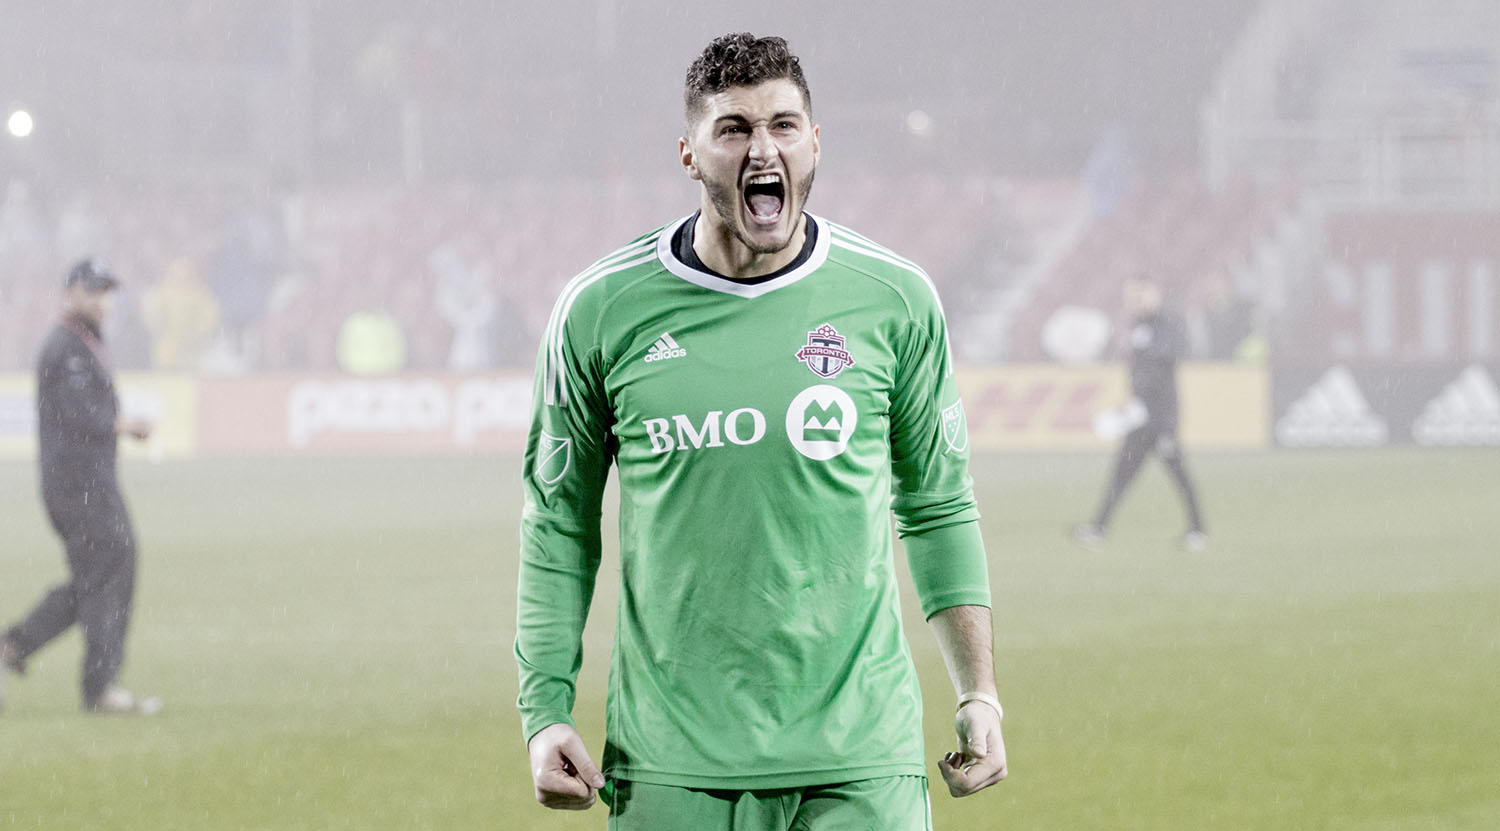 Alex Bono celebrates with the south end at BMO Field during a playoff match in 2017.